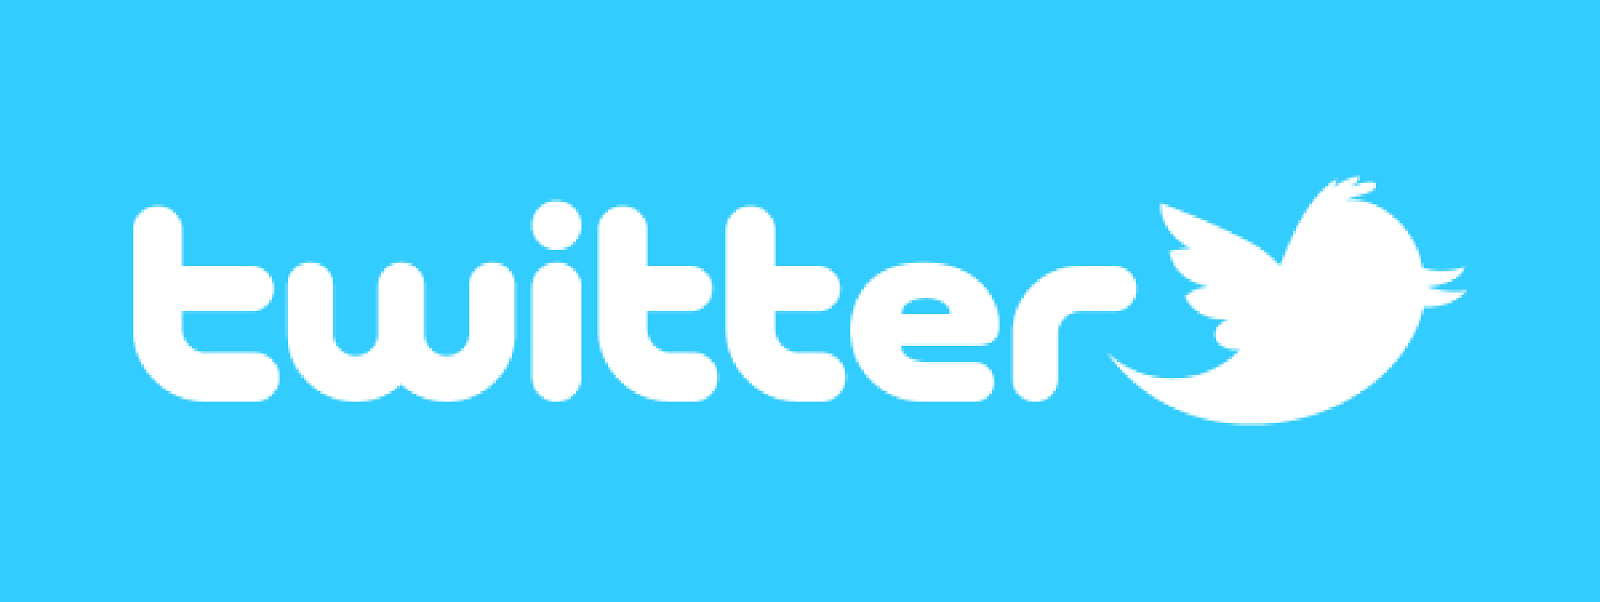 Twitter completed 8 years in Social Networking